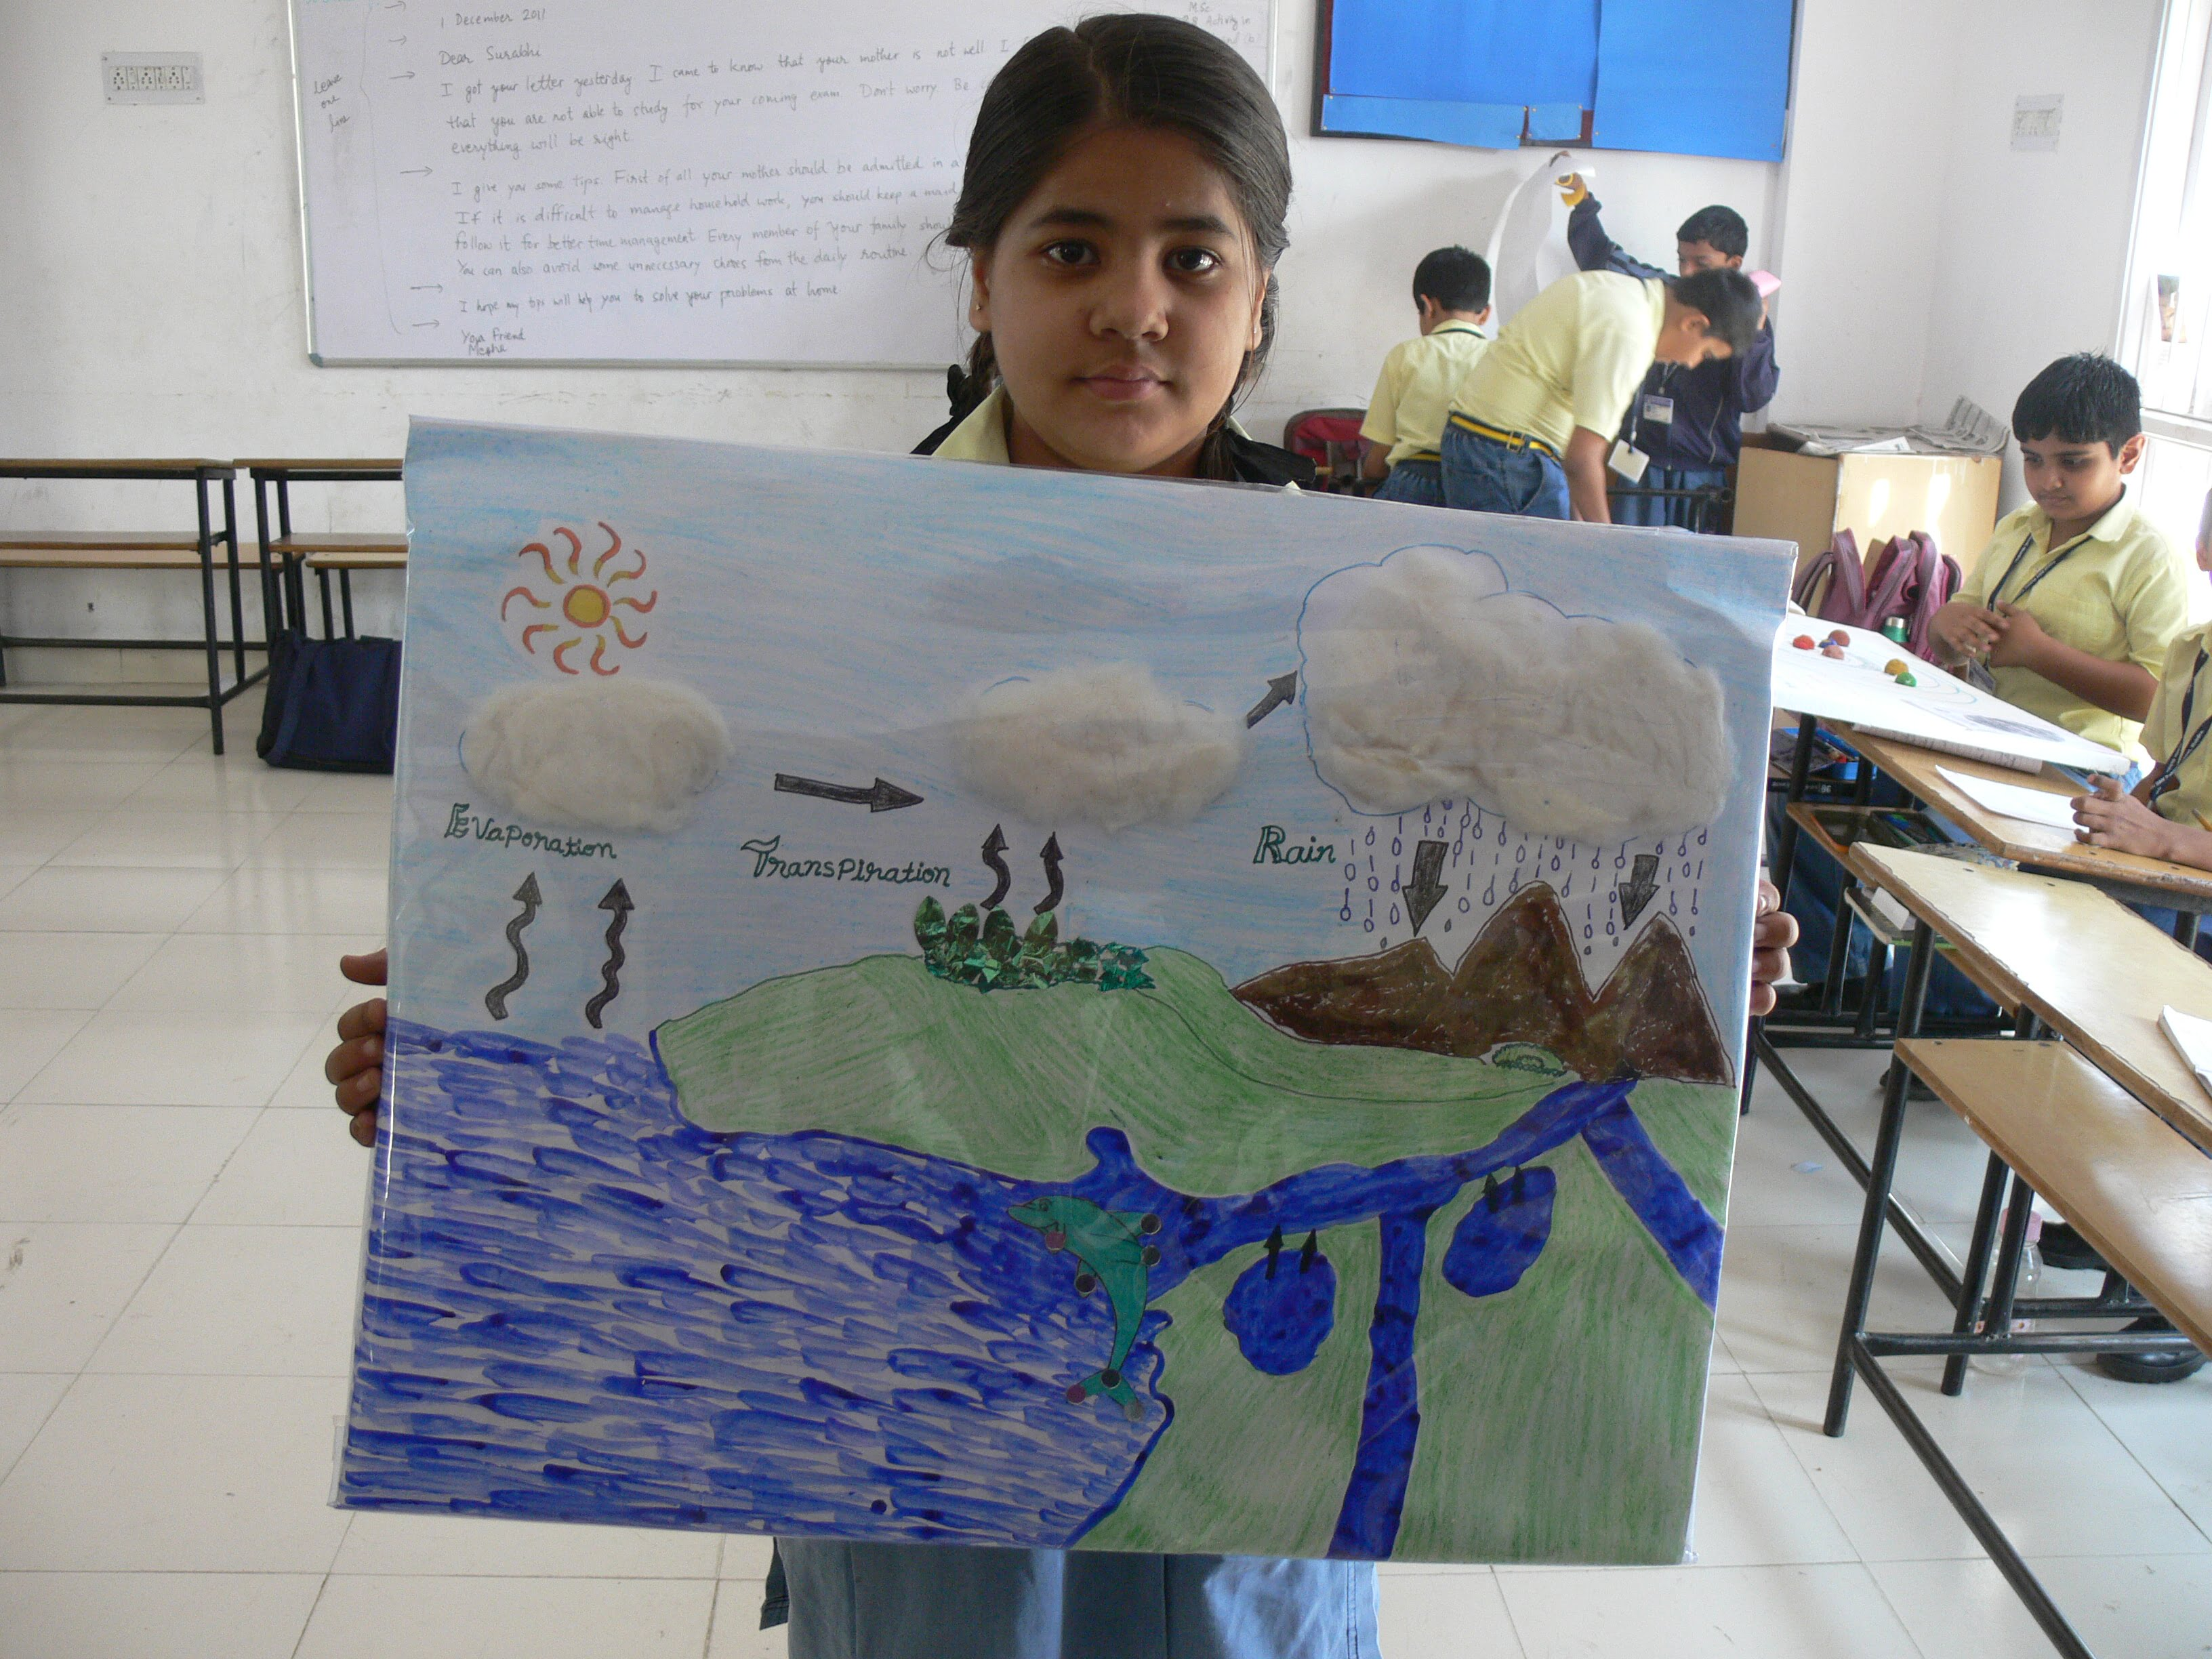 Adani School Maths And Science Exhibition